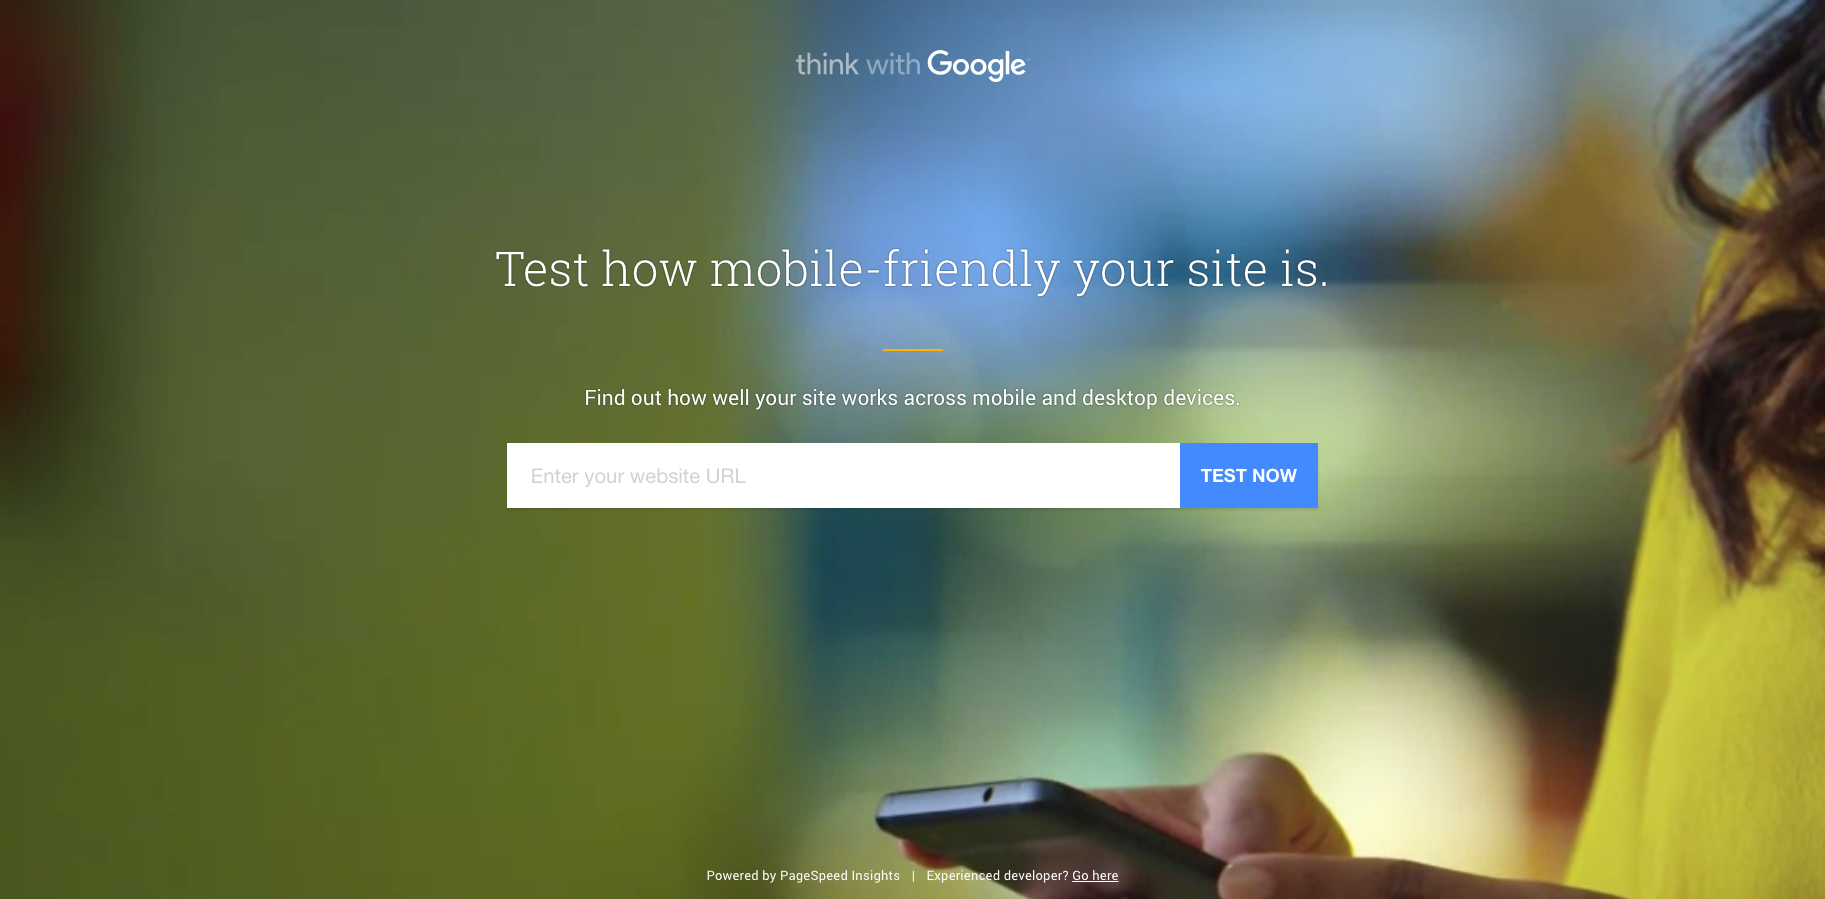 https://testmysite.thinkwithgoogle.com/  Test your website and mobile friendliness.